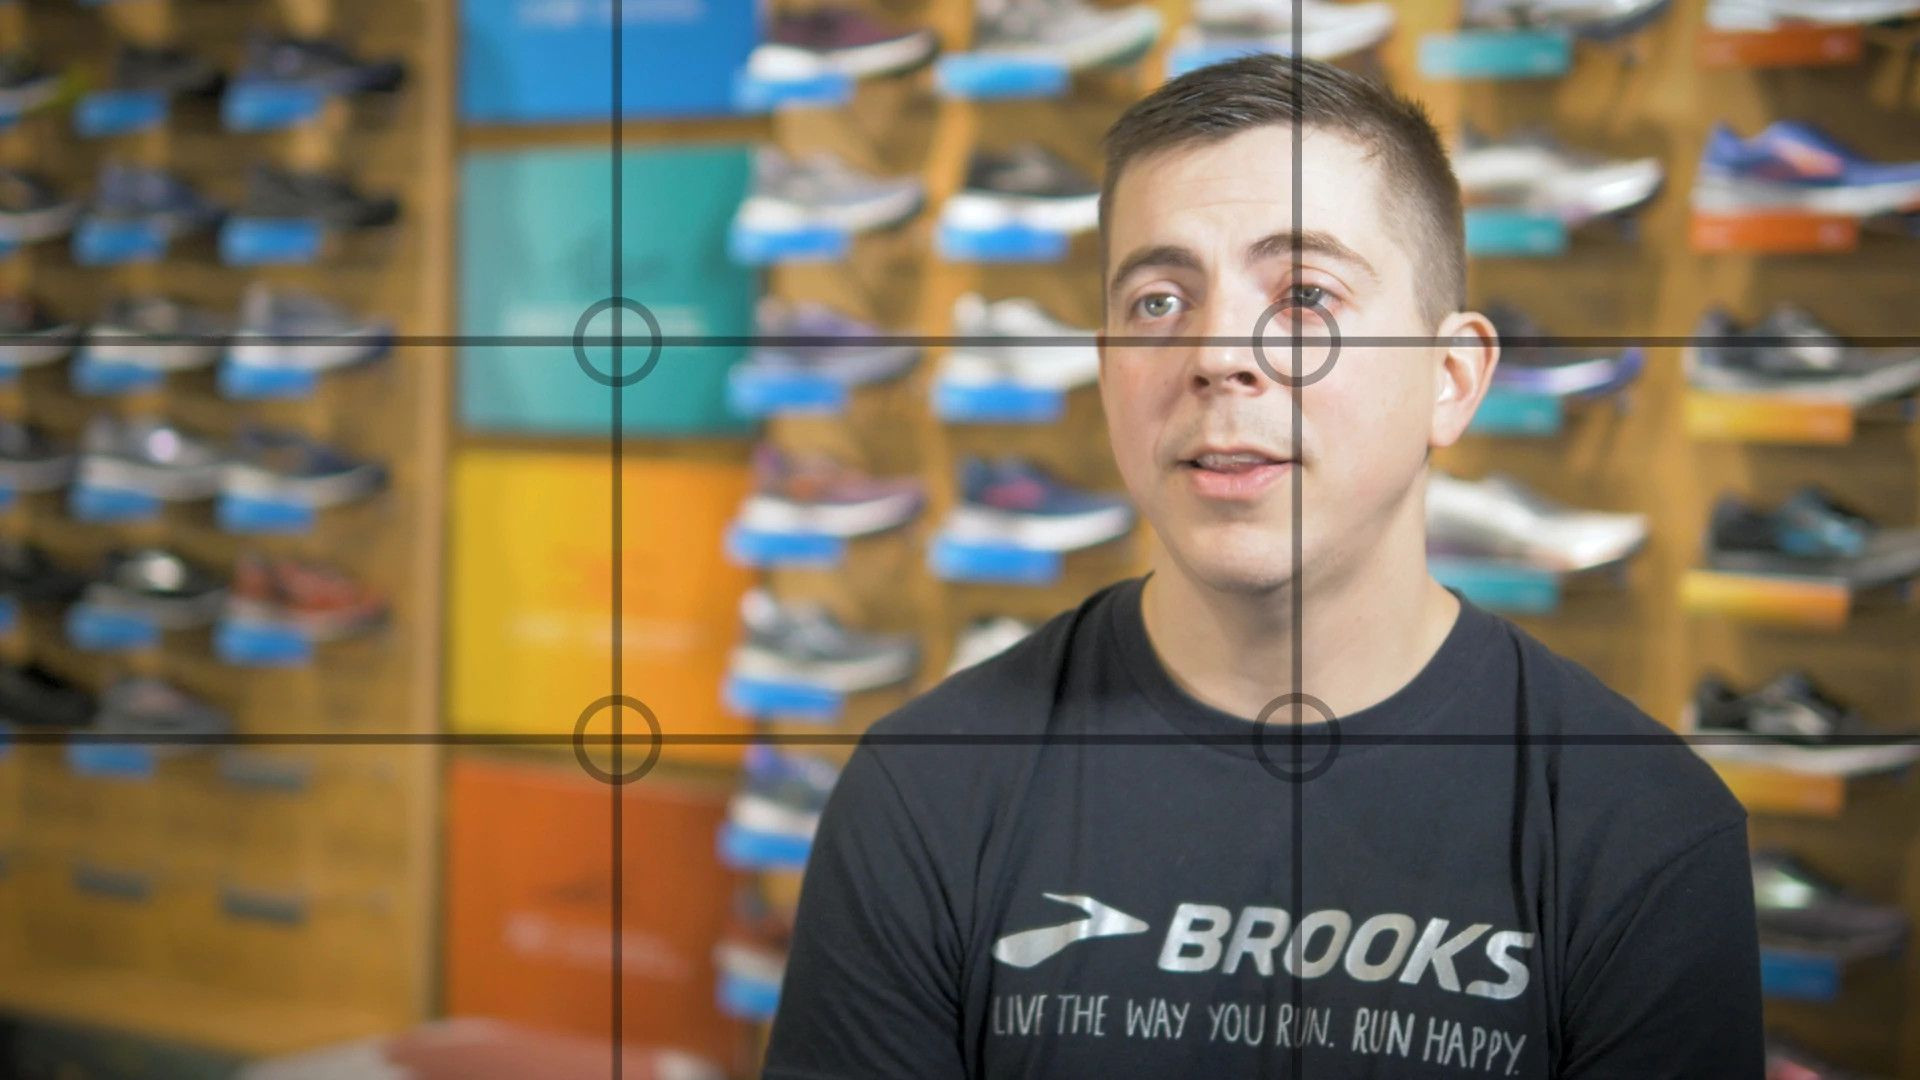 Still video frame of a customer case study interview with lines on the screen depicting the rule of thirds. The still is of a man in a black Brooks Running t-shirt with a wall of shoes blurred out in the background.